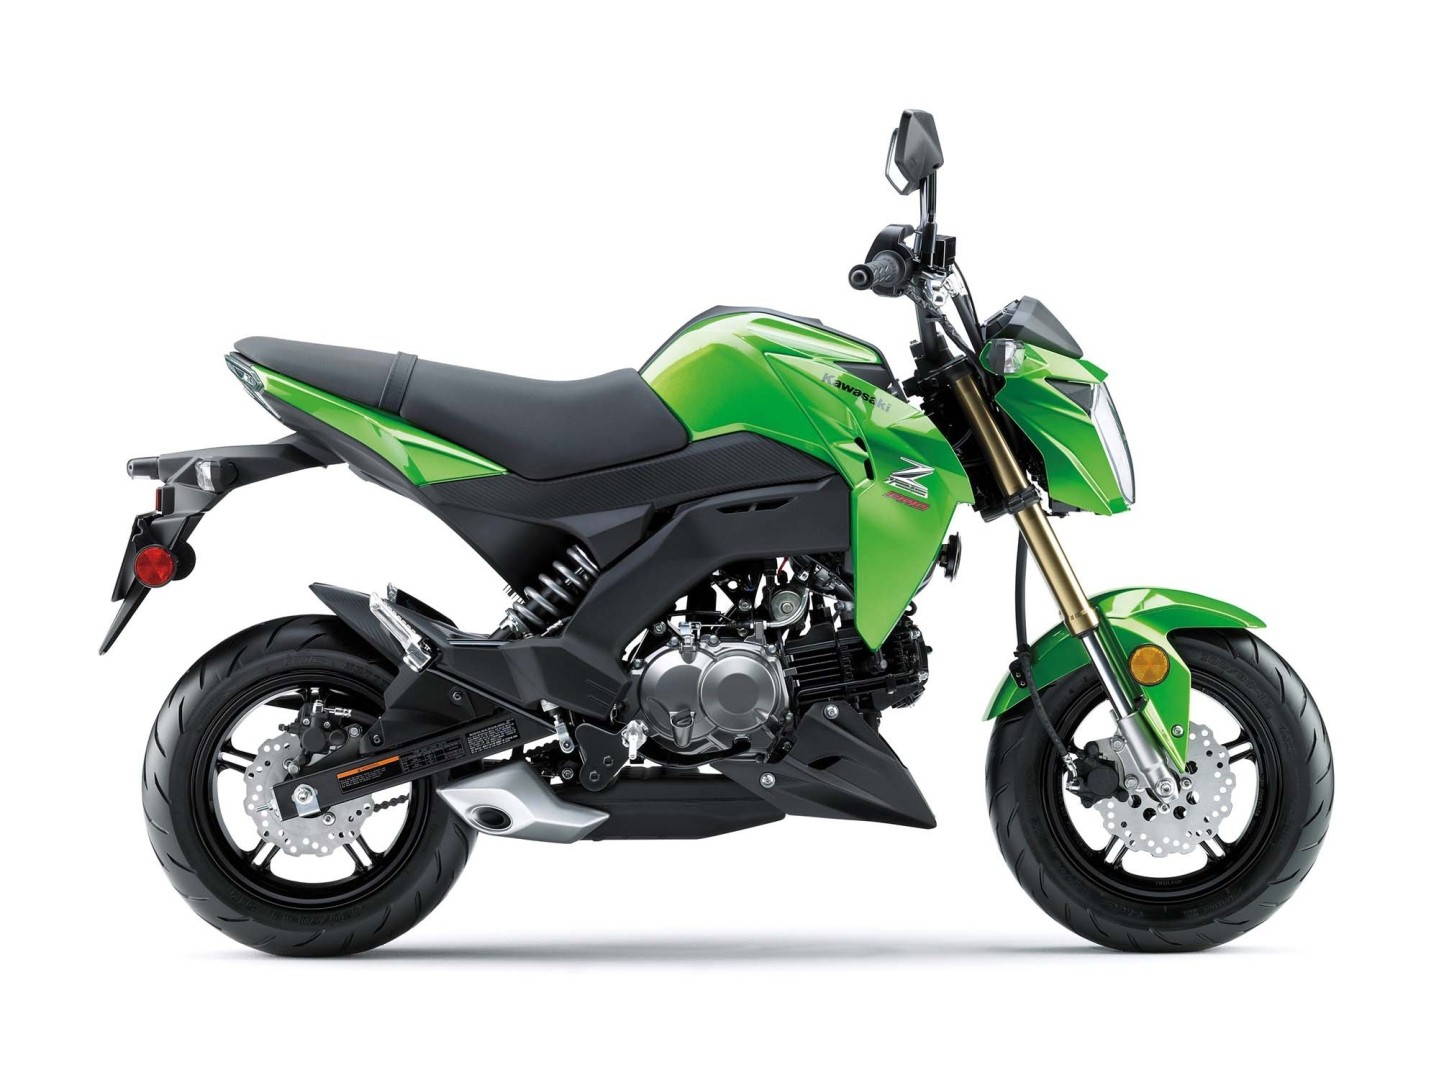 2017 Kawasaki Z125 Pro Is the Authentic Honda Grom Rival ...